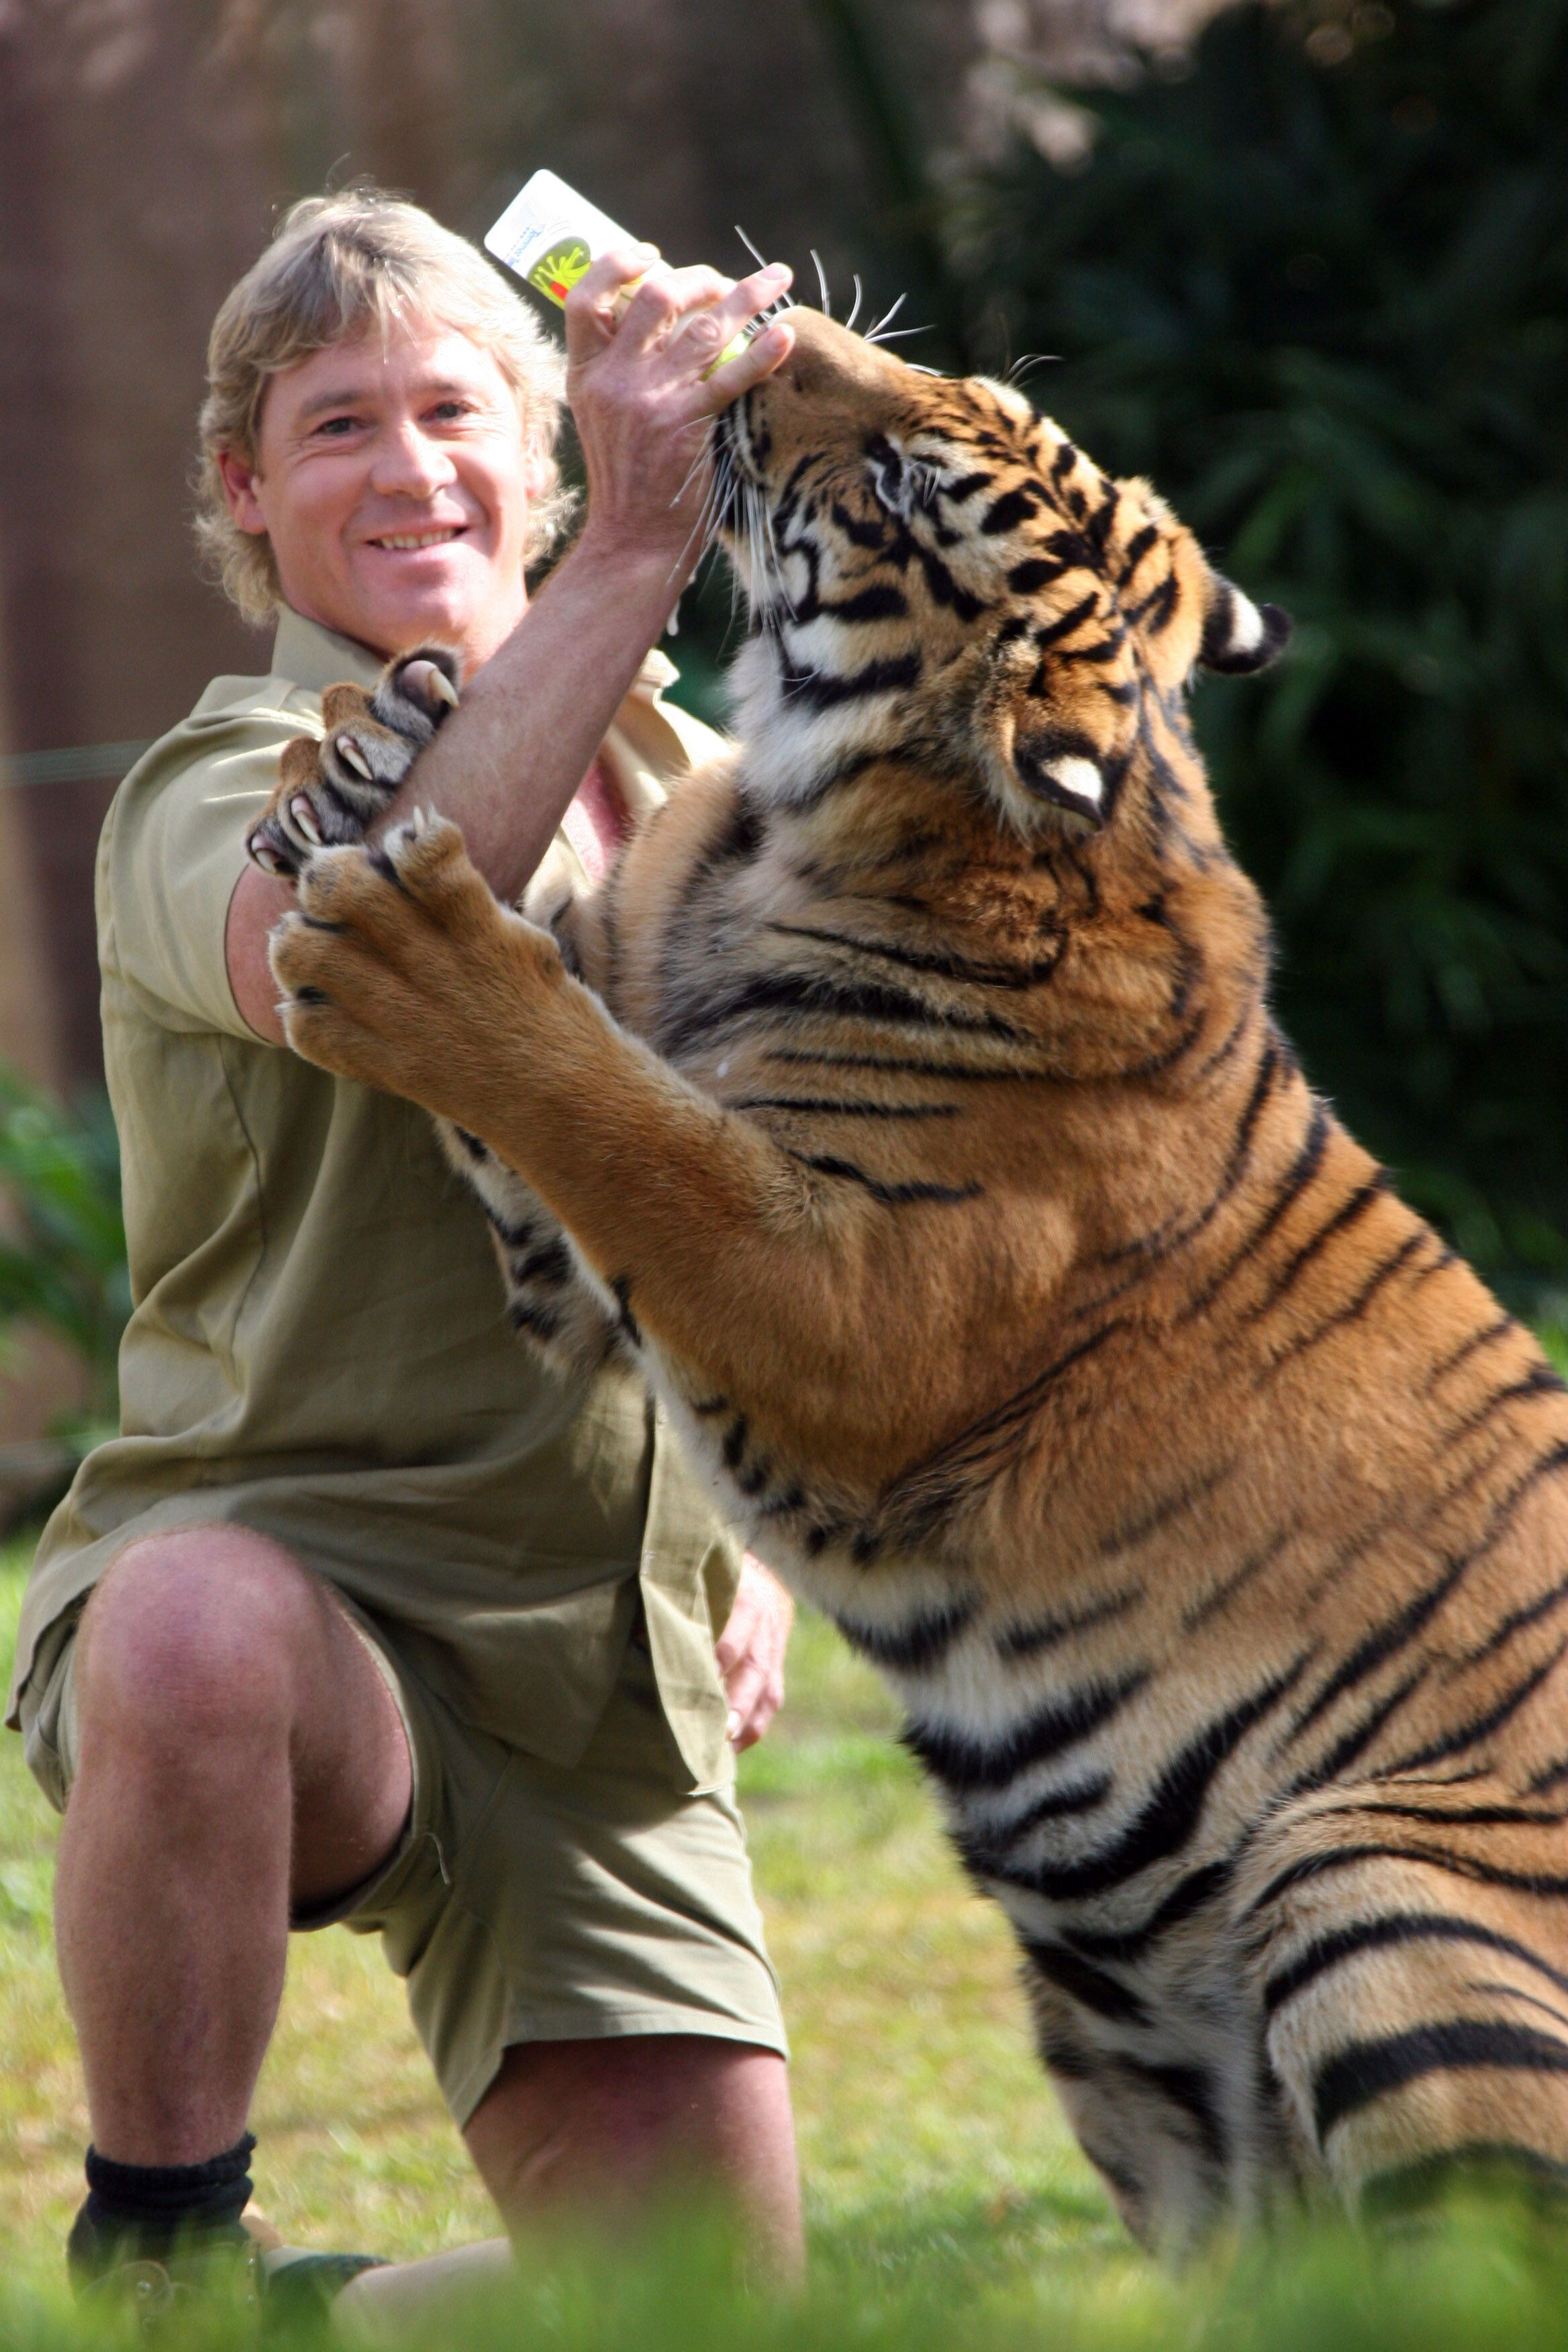 Steve Irwin bottle-feeds a tiger at Australia Zoo June 1, 2005 | Source: Getty Images